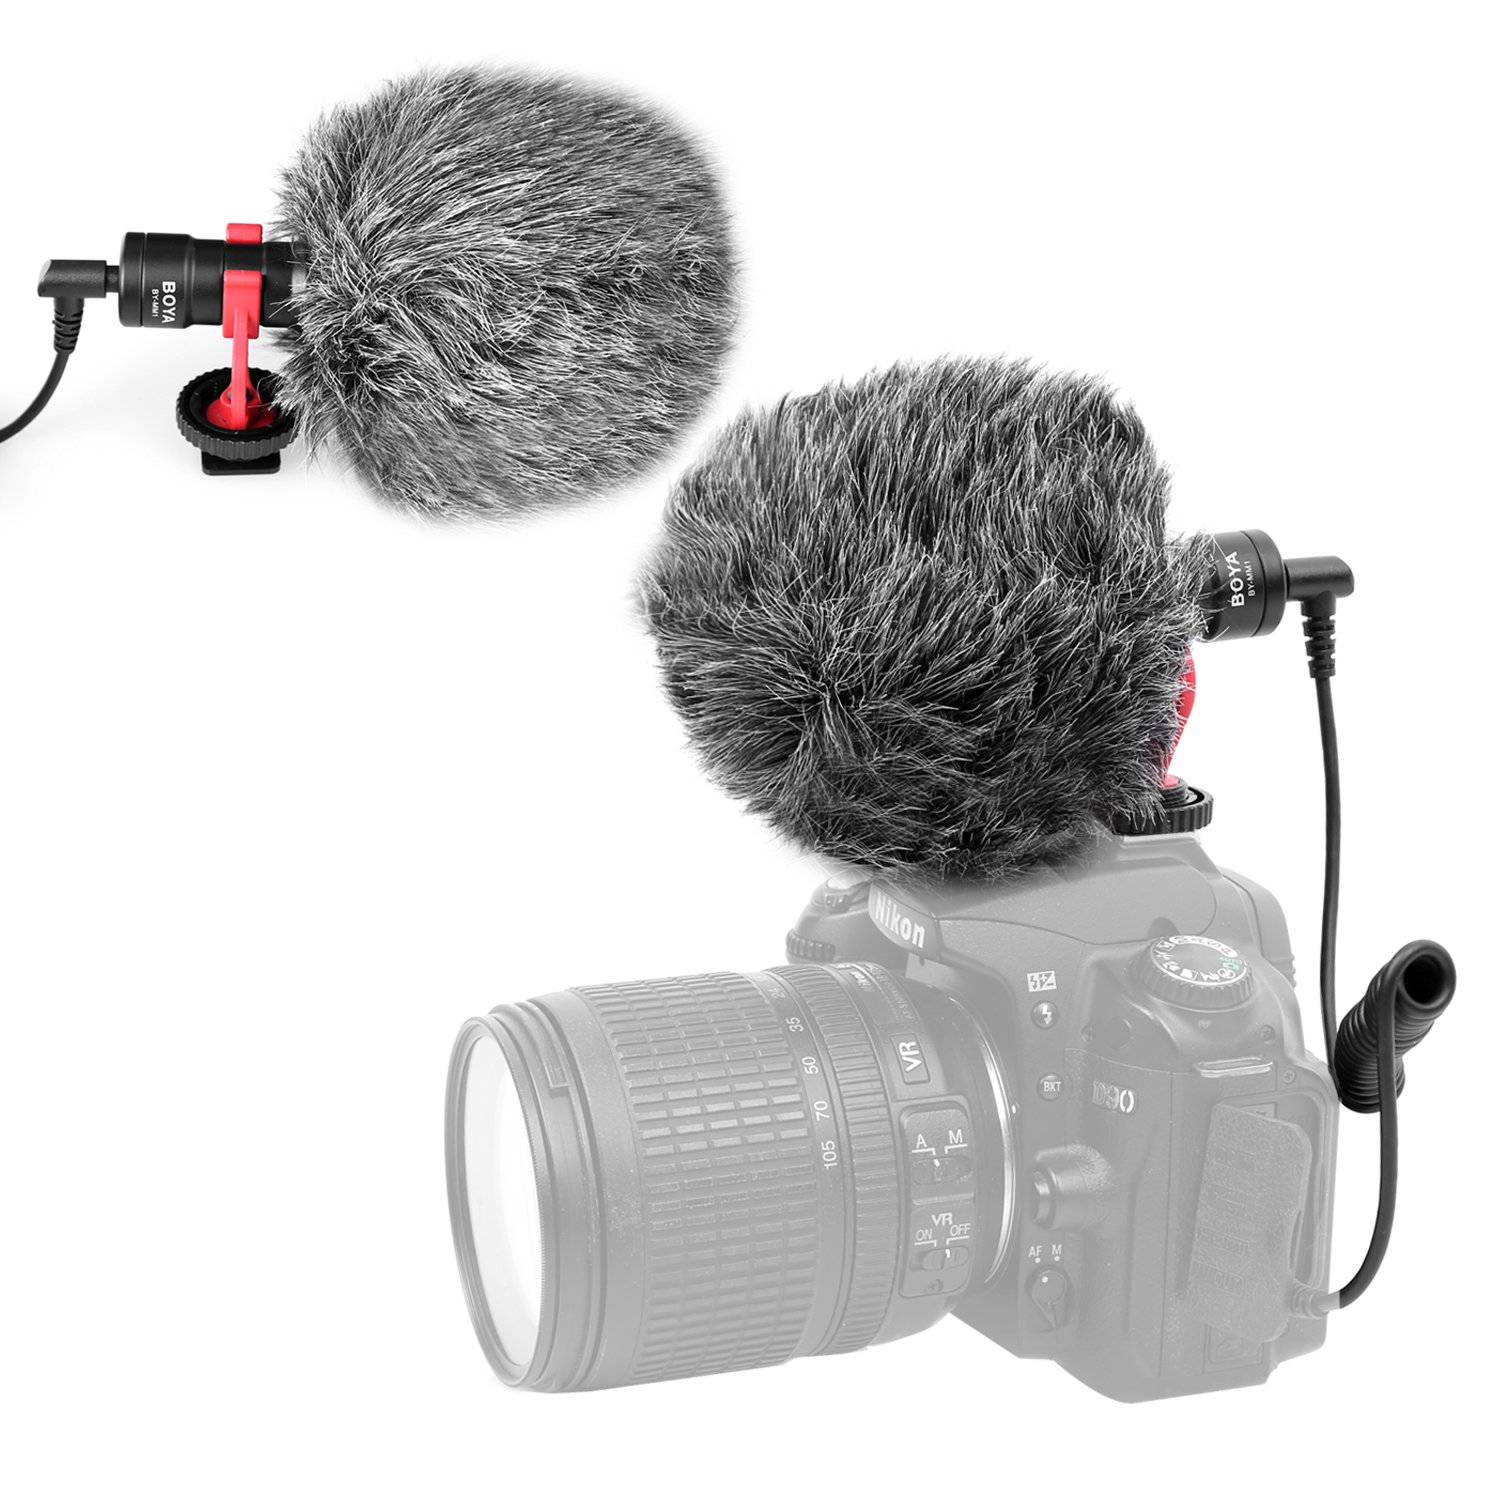 Kamisafe BOYA by-MM1 Mini Shotgun Video Microphone 3.5mm Universal Cardioid Recording Mic Compatible with iPhone Huawei DJI Osmo Mobile ZHIYUN Smooth Q Canon Nikon Sony DSLR Cameras Camcorders